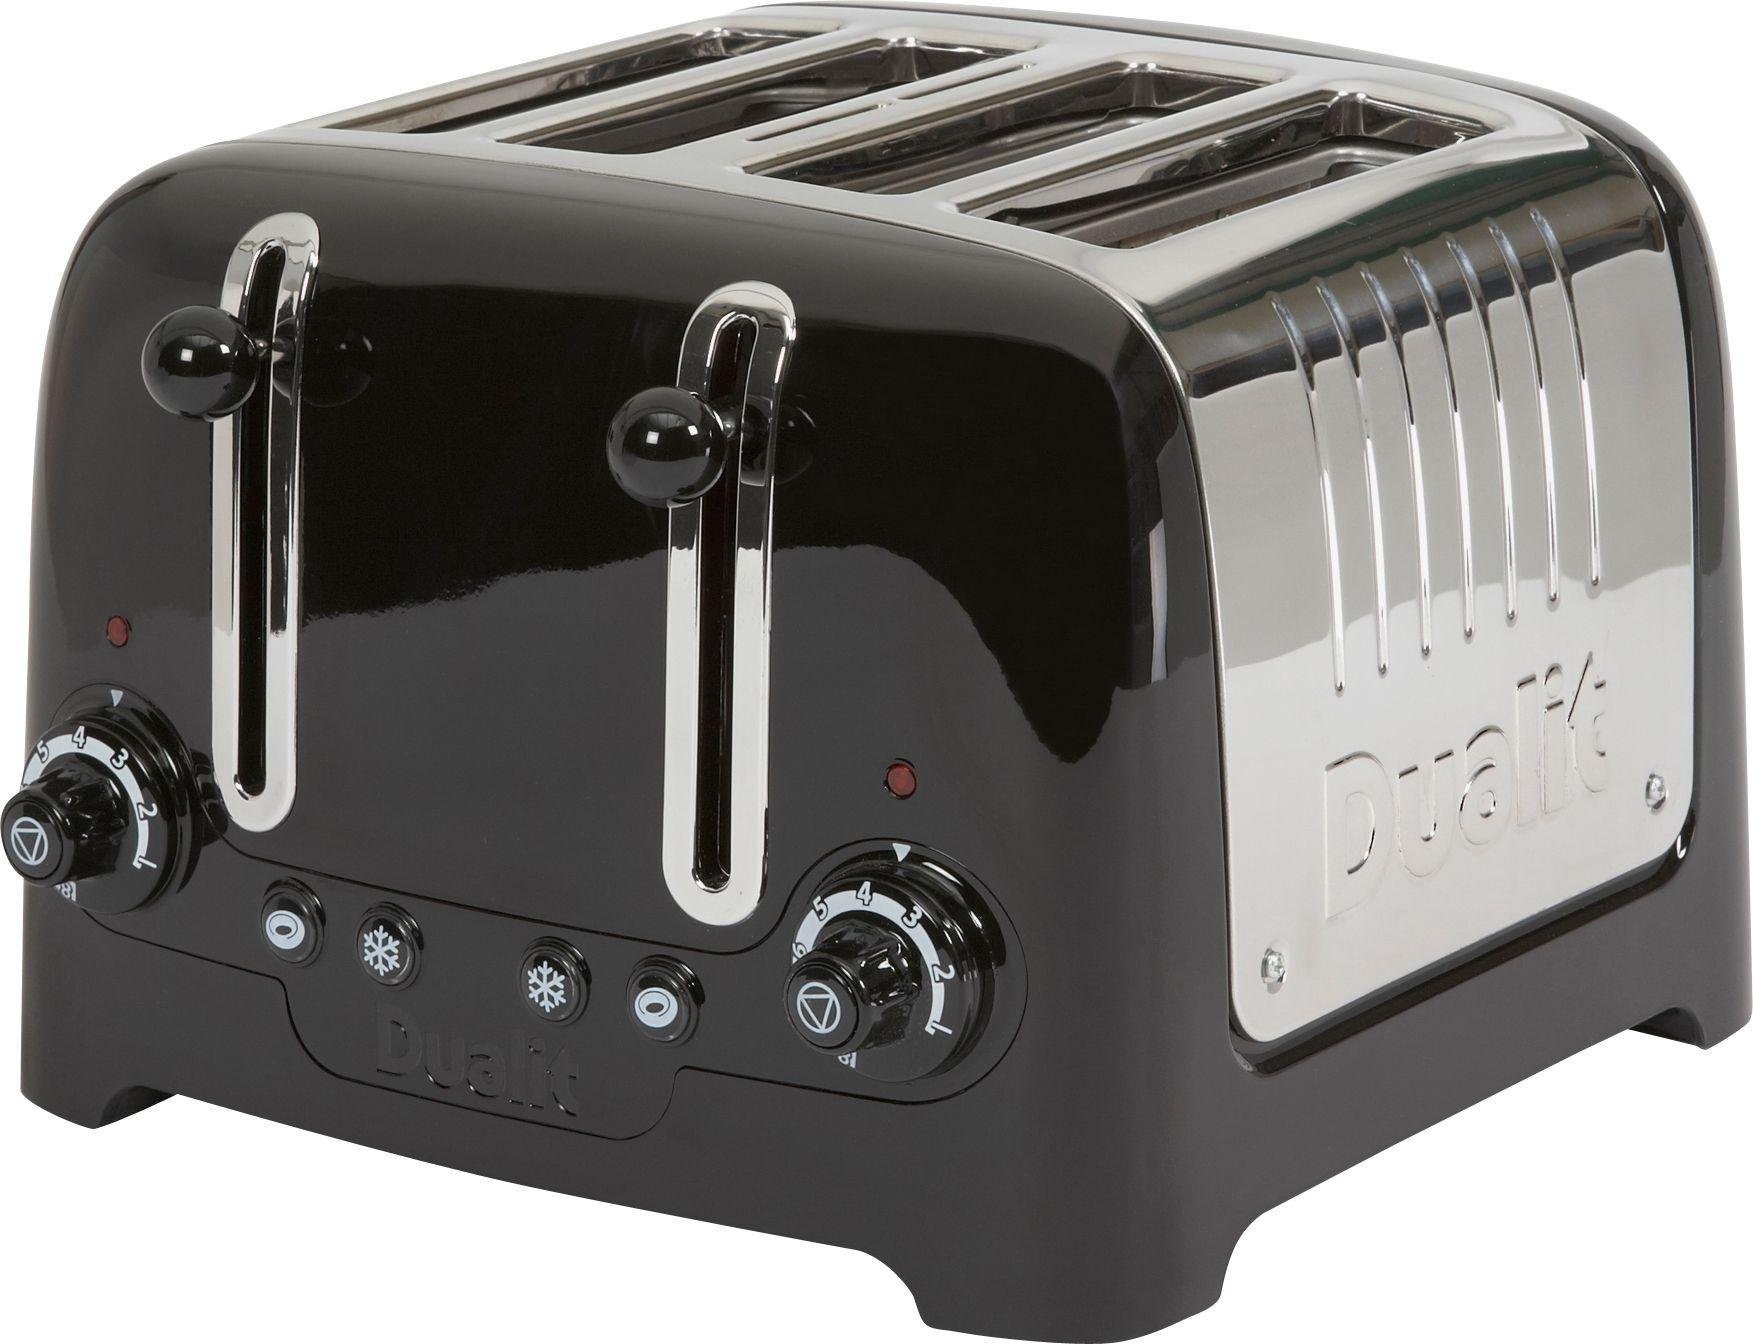 Buy Dualit DPP4 4 Slice Lite Toaster Black at Argos Your